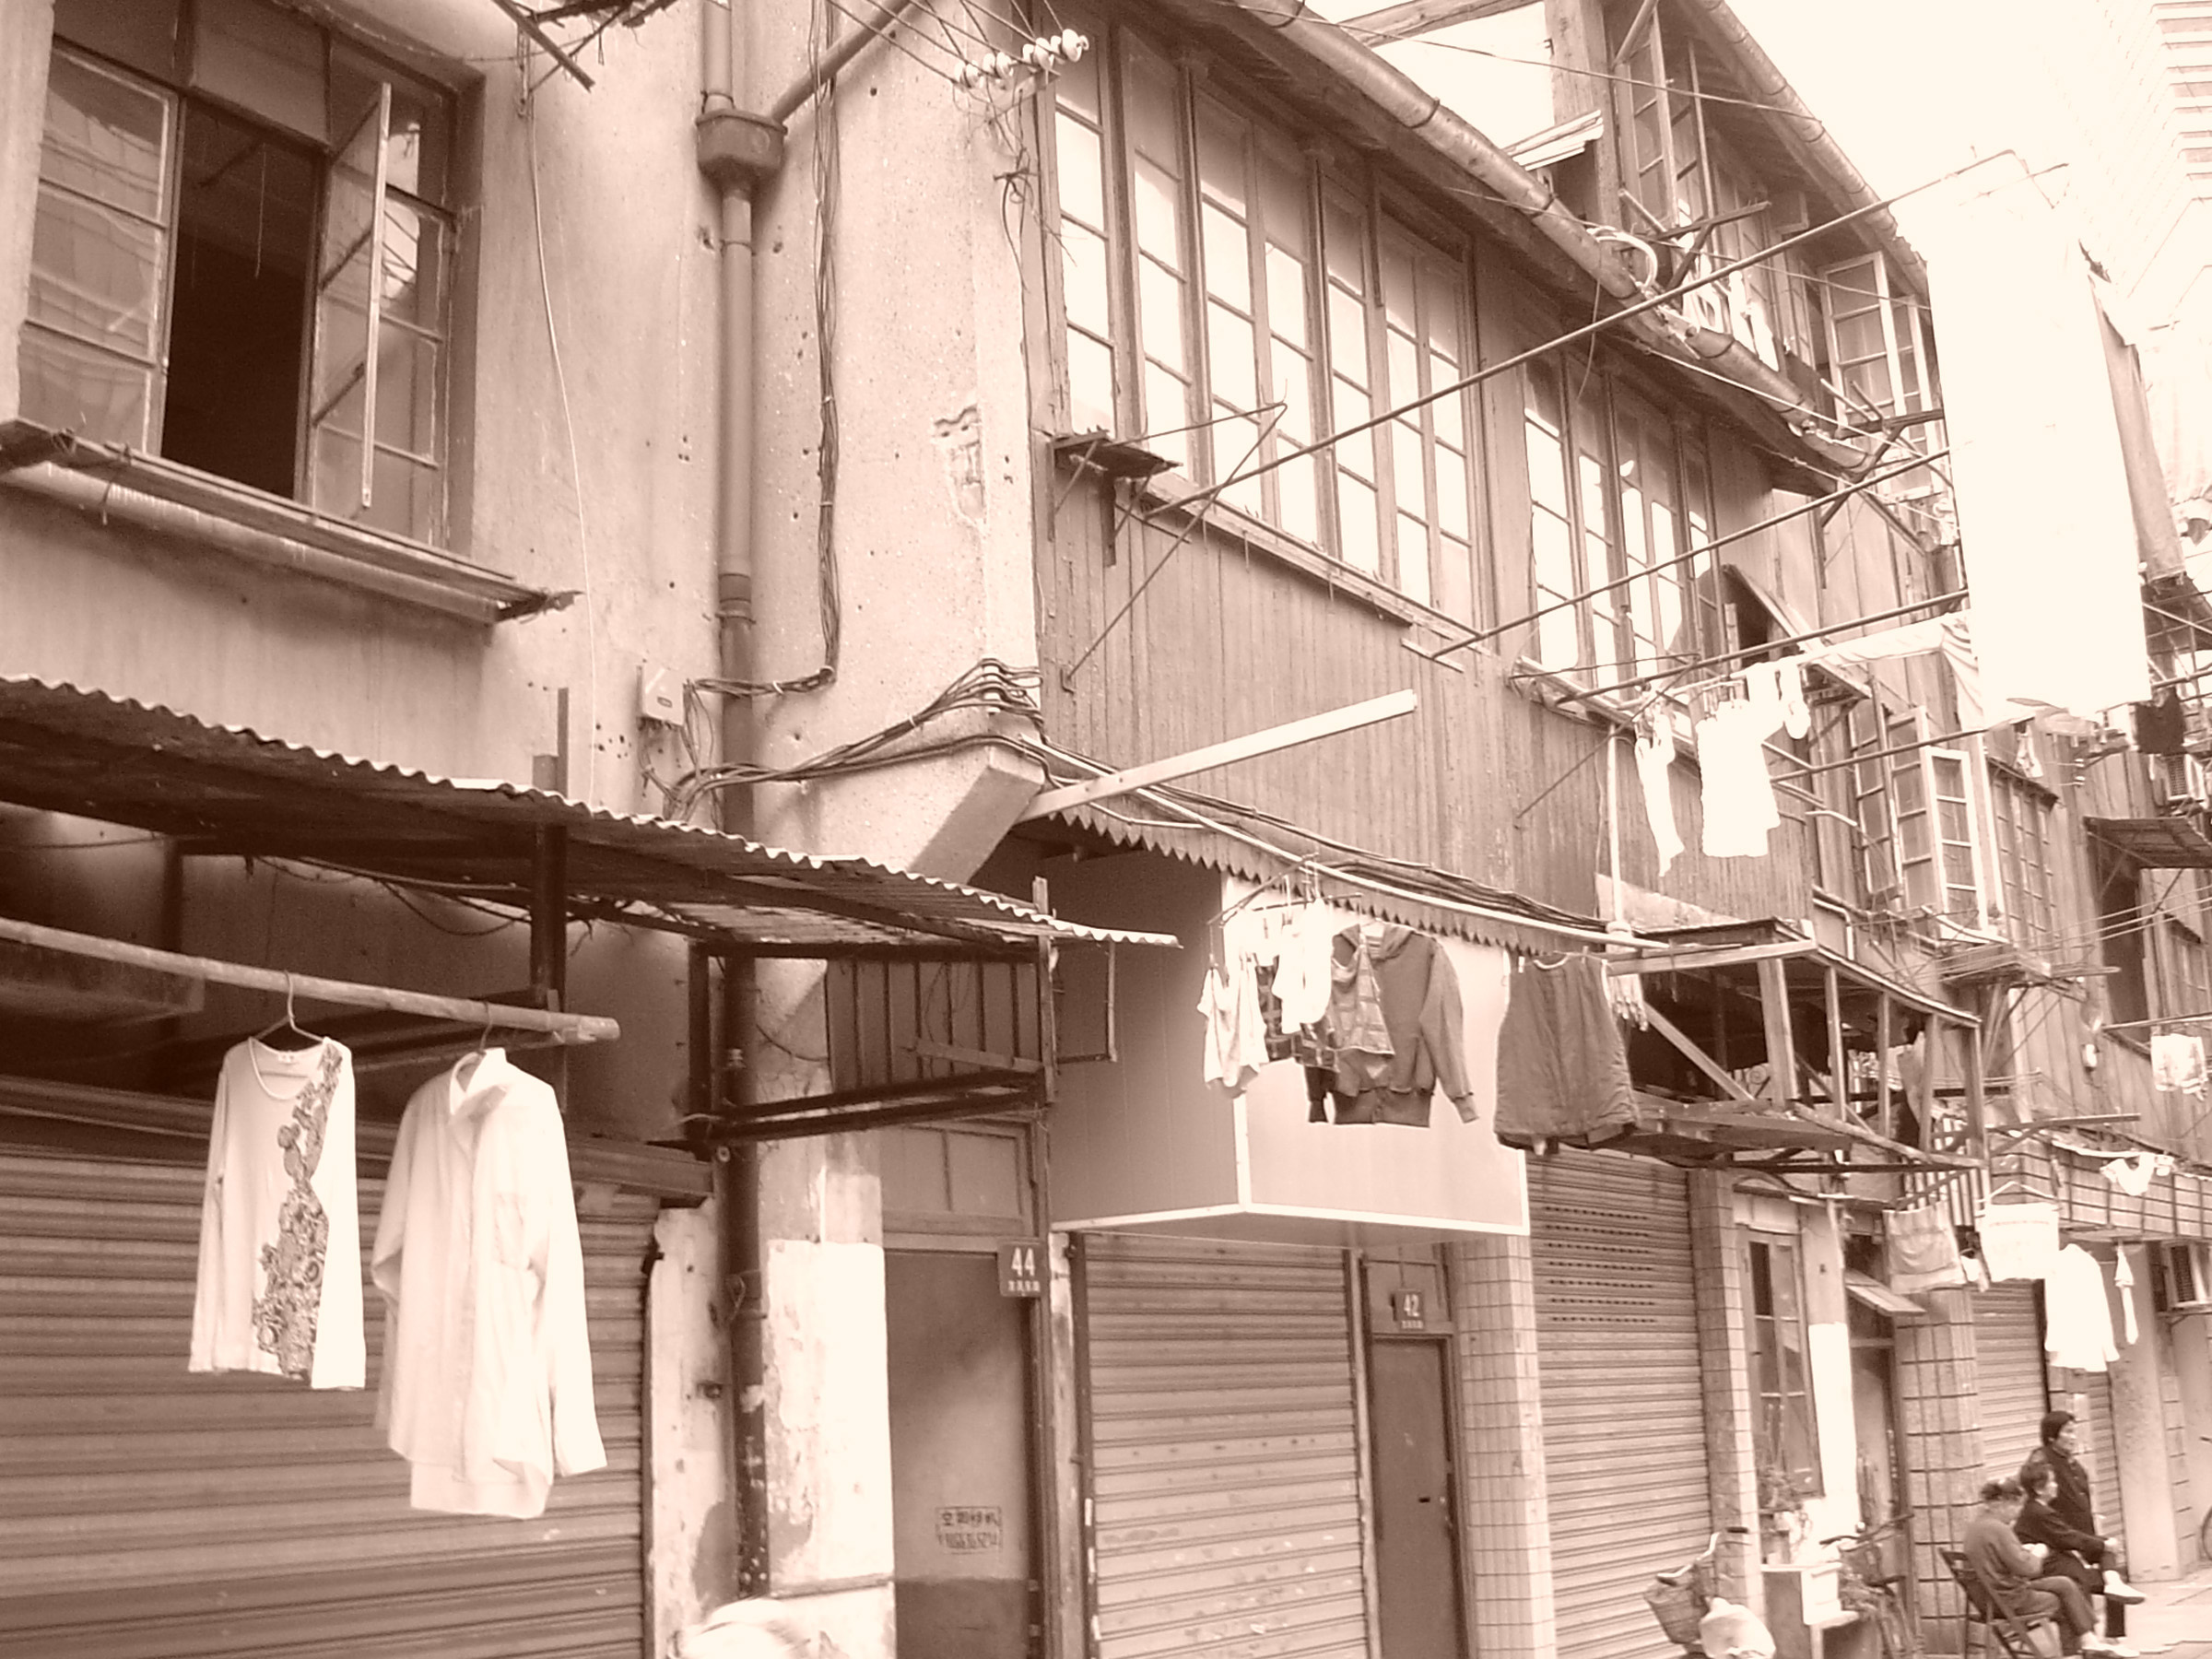 Sepia view of a typical Chinese street scene with residential apartments and washing hanging out to dry on the facades of buildings with people chatting in the street